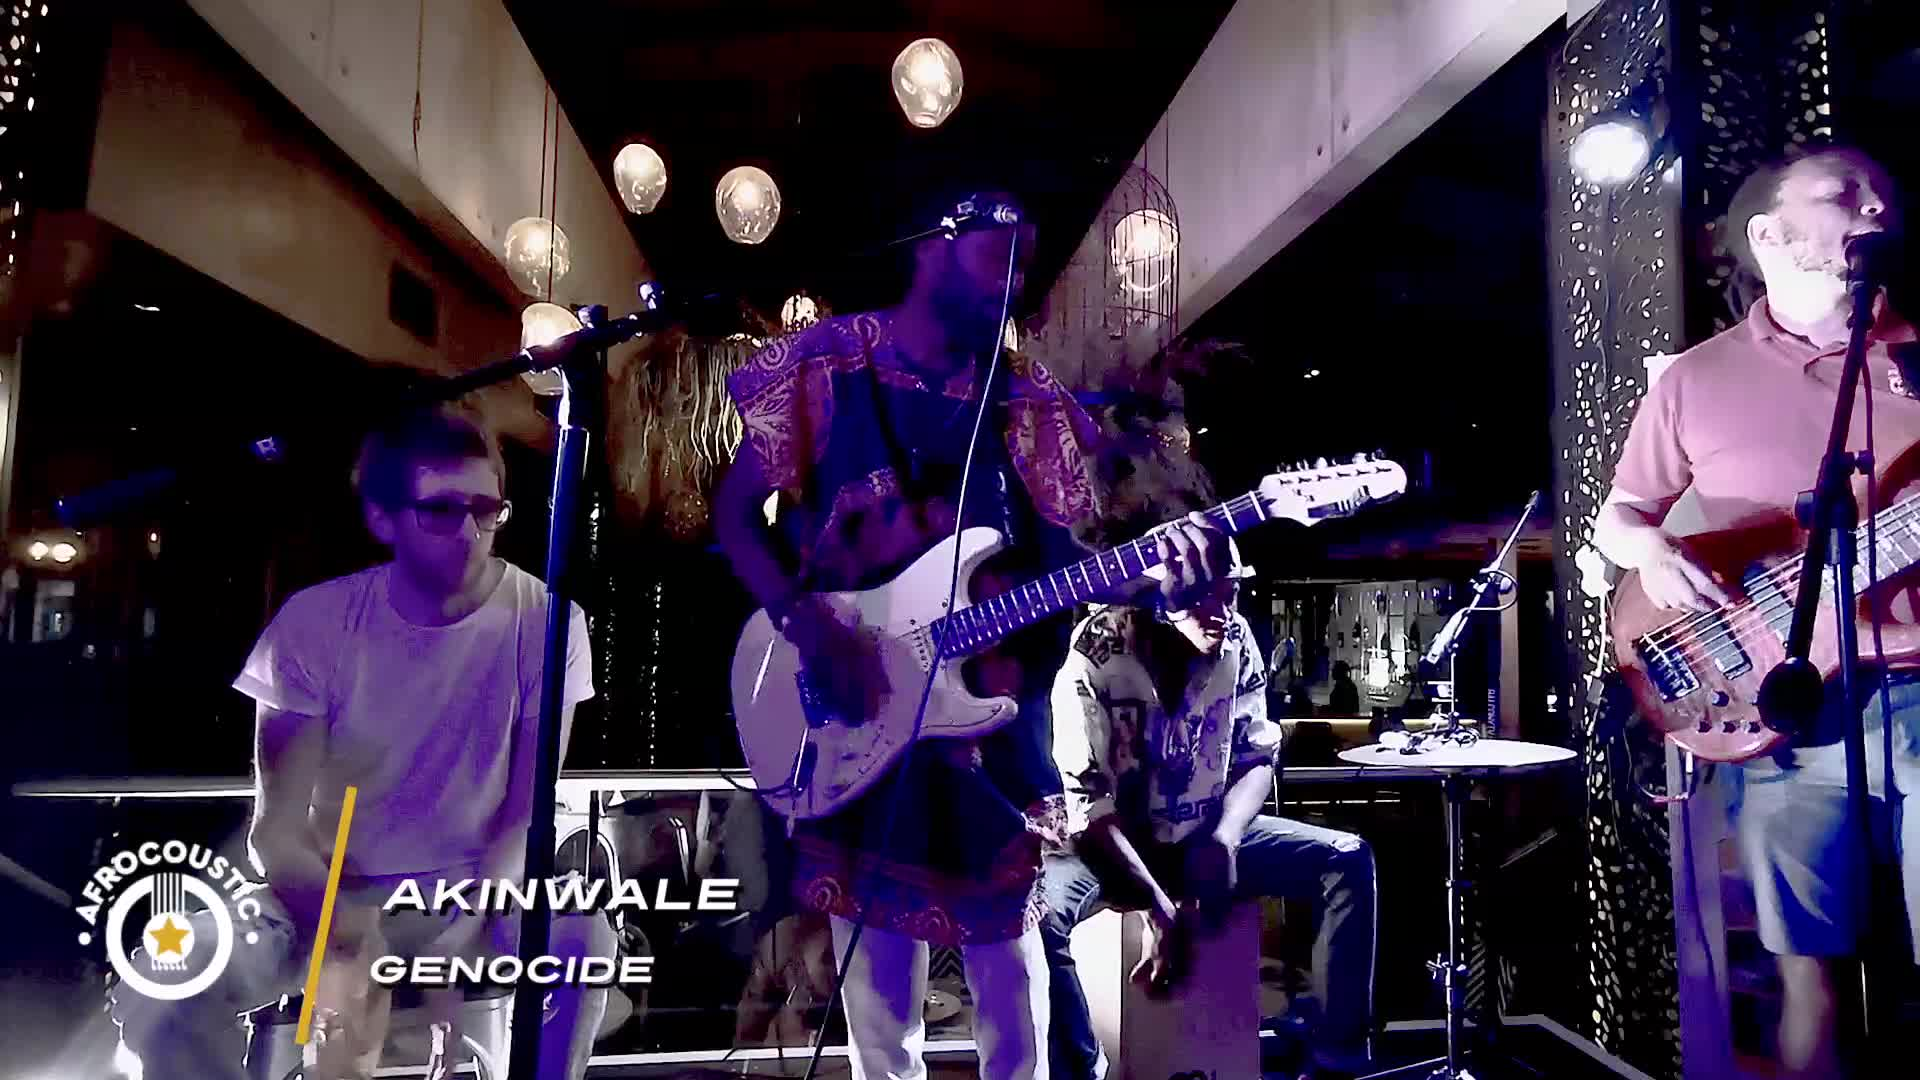 Afrocoustic Akinwale - Genocide